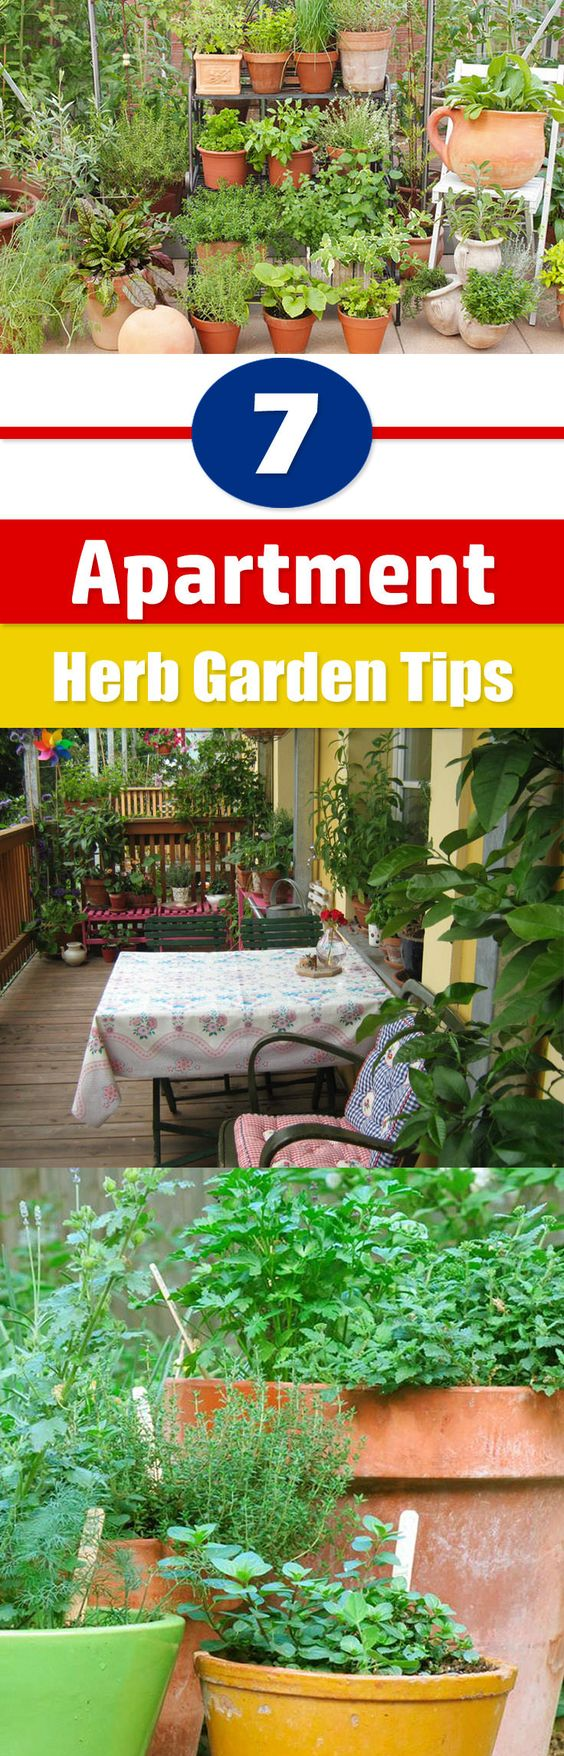 space for a regular garden with these 7 apartment herb garden tips